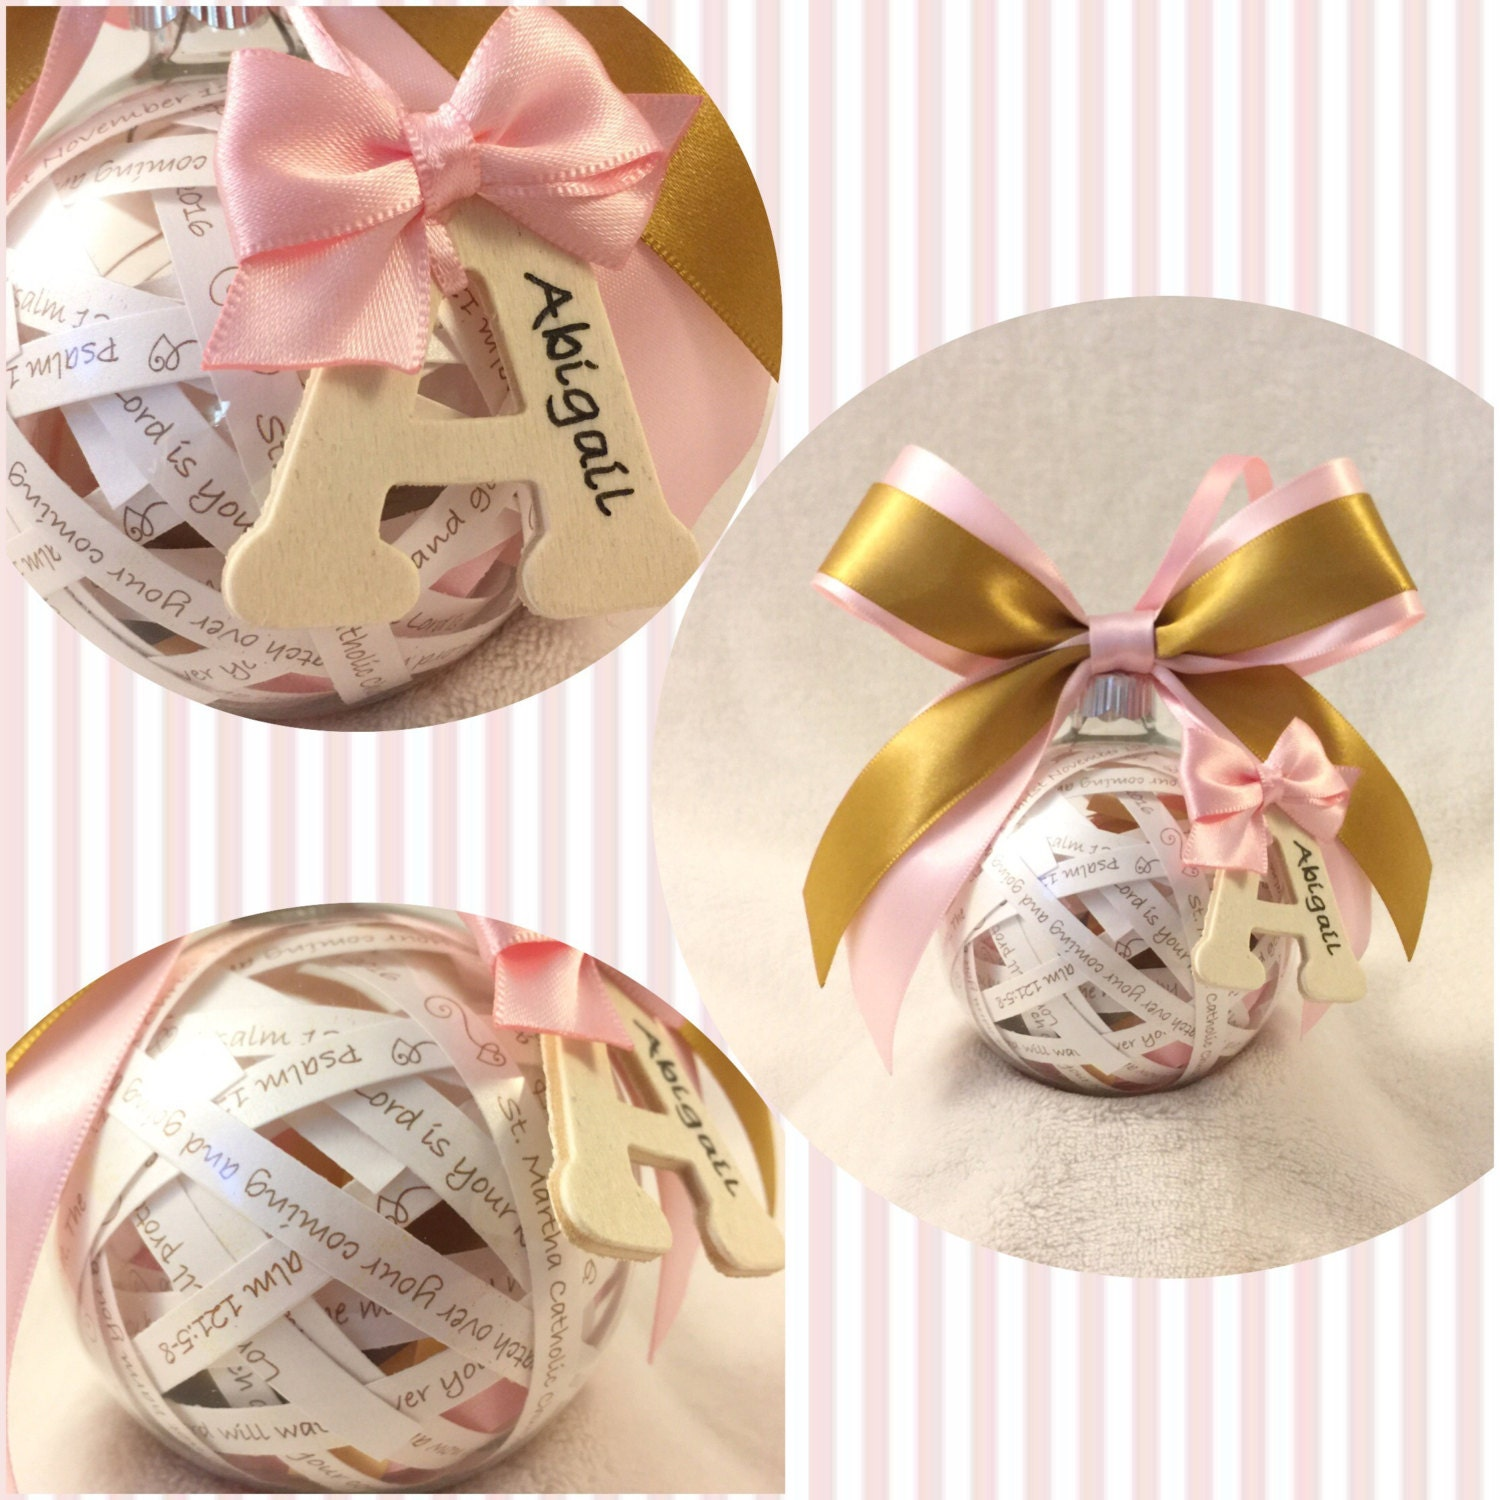 Baptism Ornament Christmas Ornament Personalized Baby: Personalized Baby Keepsake Bible Verse Ball Ornament